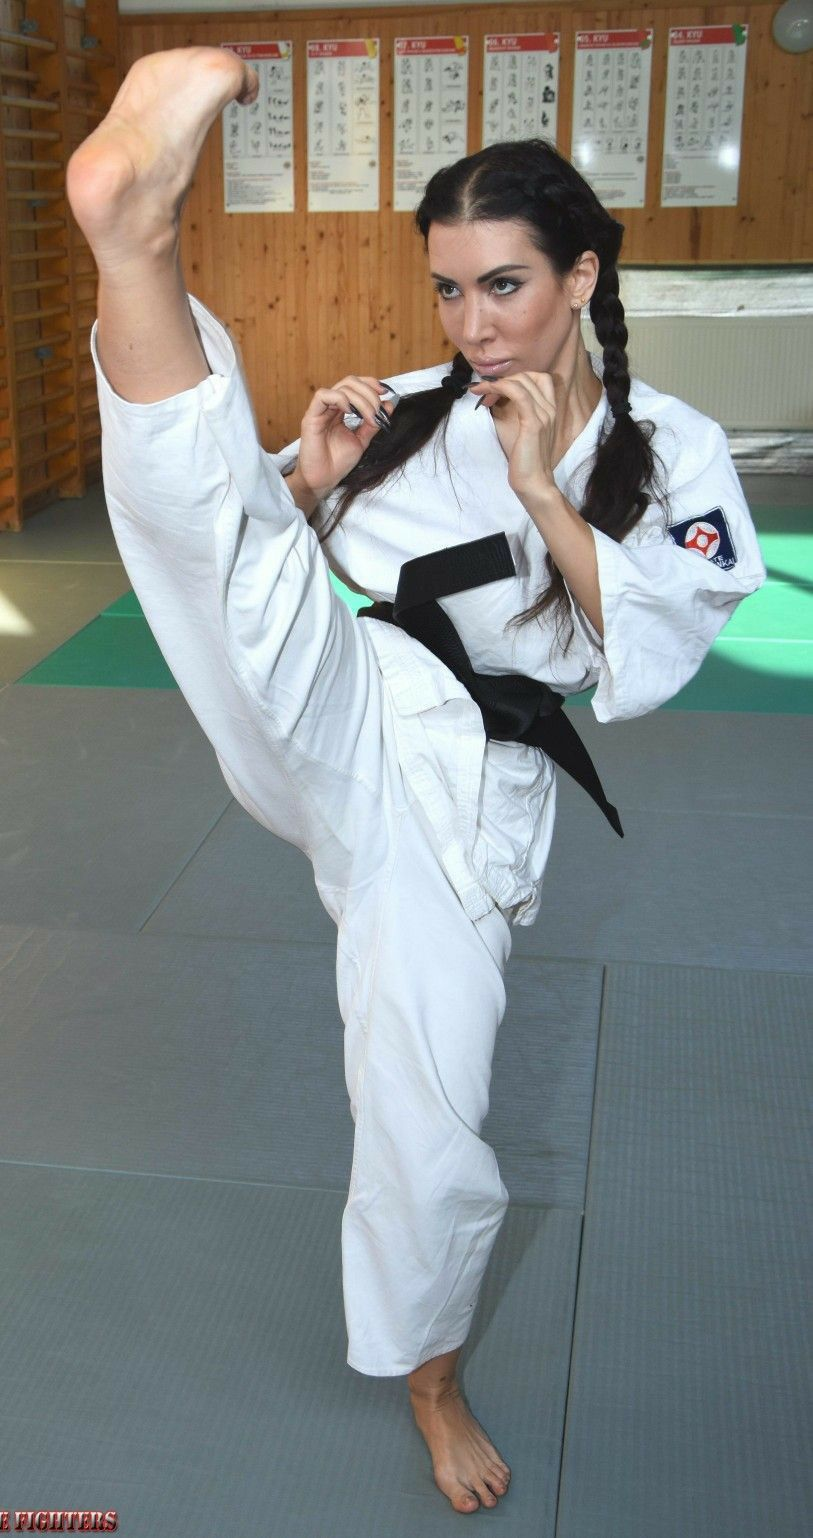 Pin by David Goode on Karate Girls in 2020 (With images